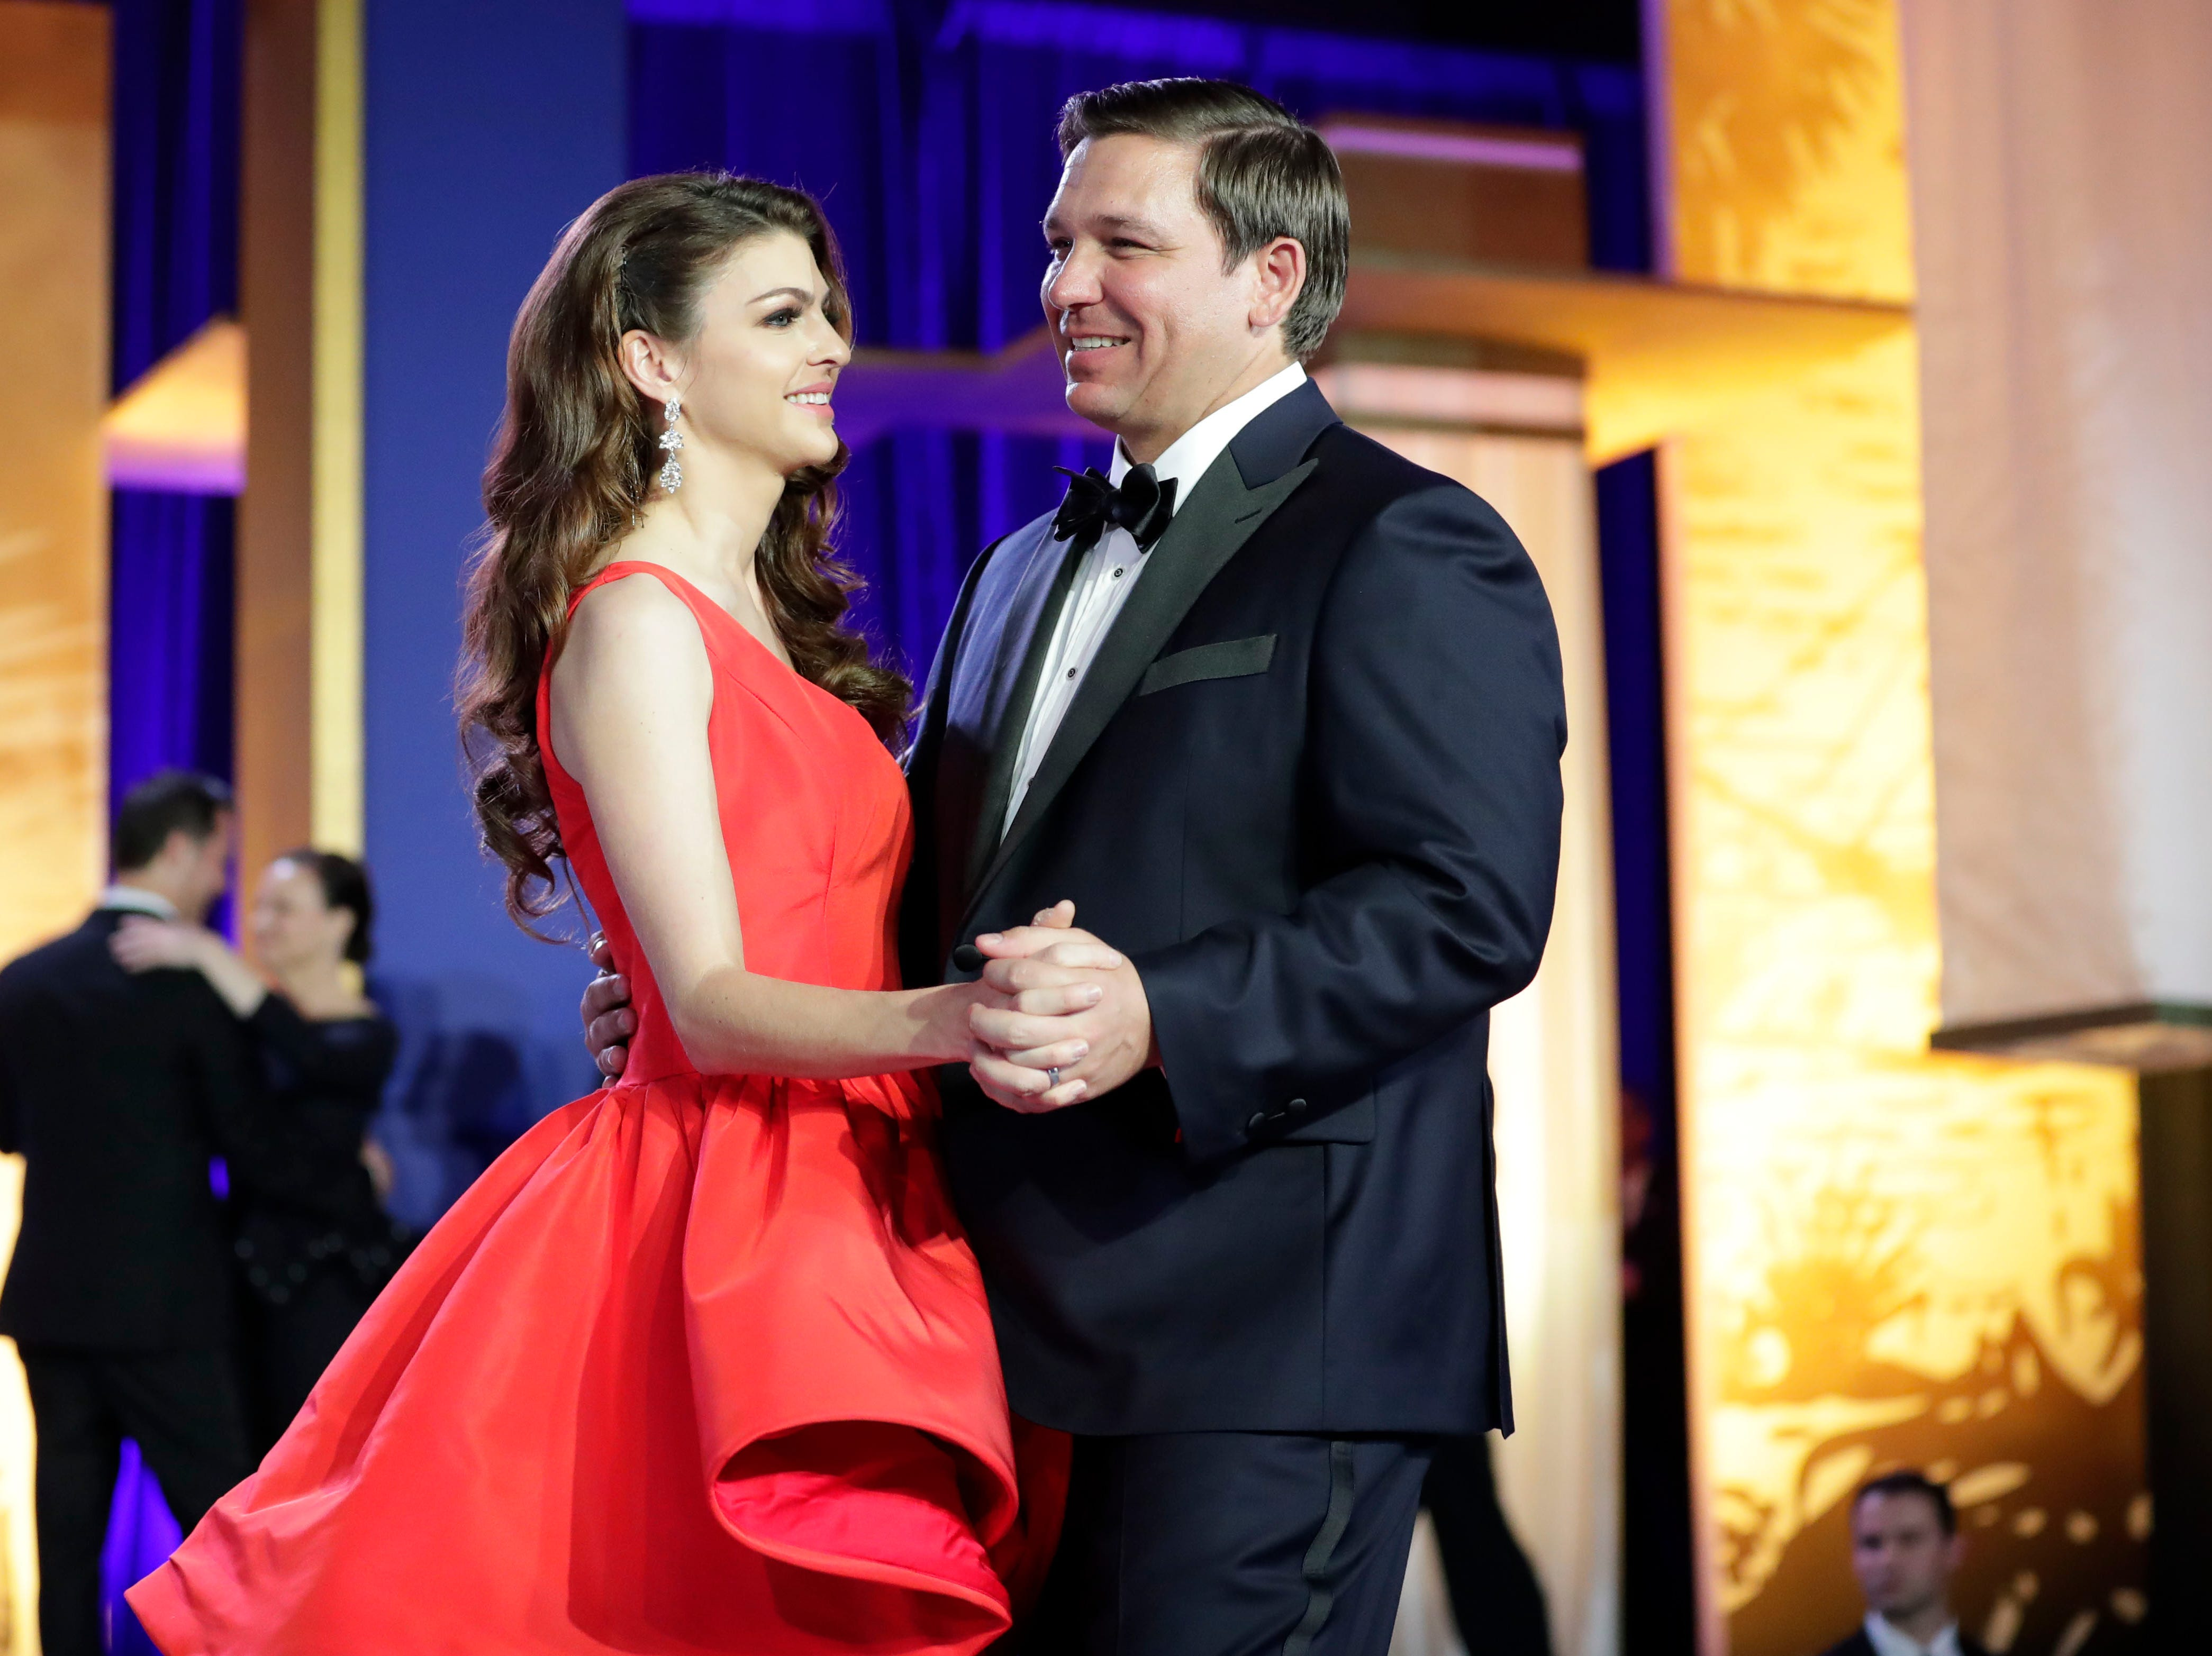 Hundreds of guests from all over Florida attend Florida's 46th Governor's Inaugural Ball at the Tucker Civic Center, Tuesday, Jan. 8, 2019. Gov. Ron DeSantis cheerfully dances with his wife, first lady Casey DeSantis.